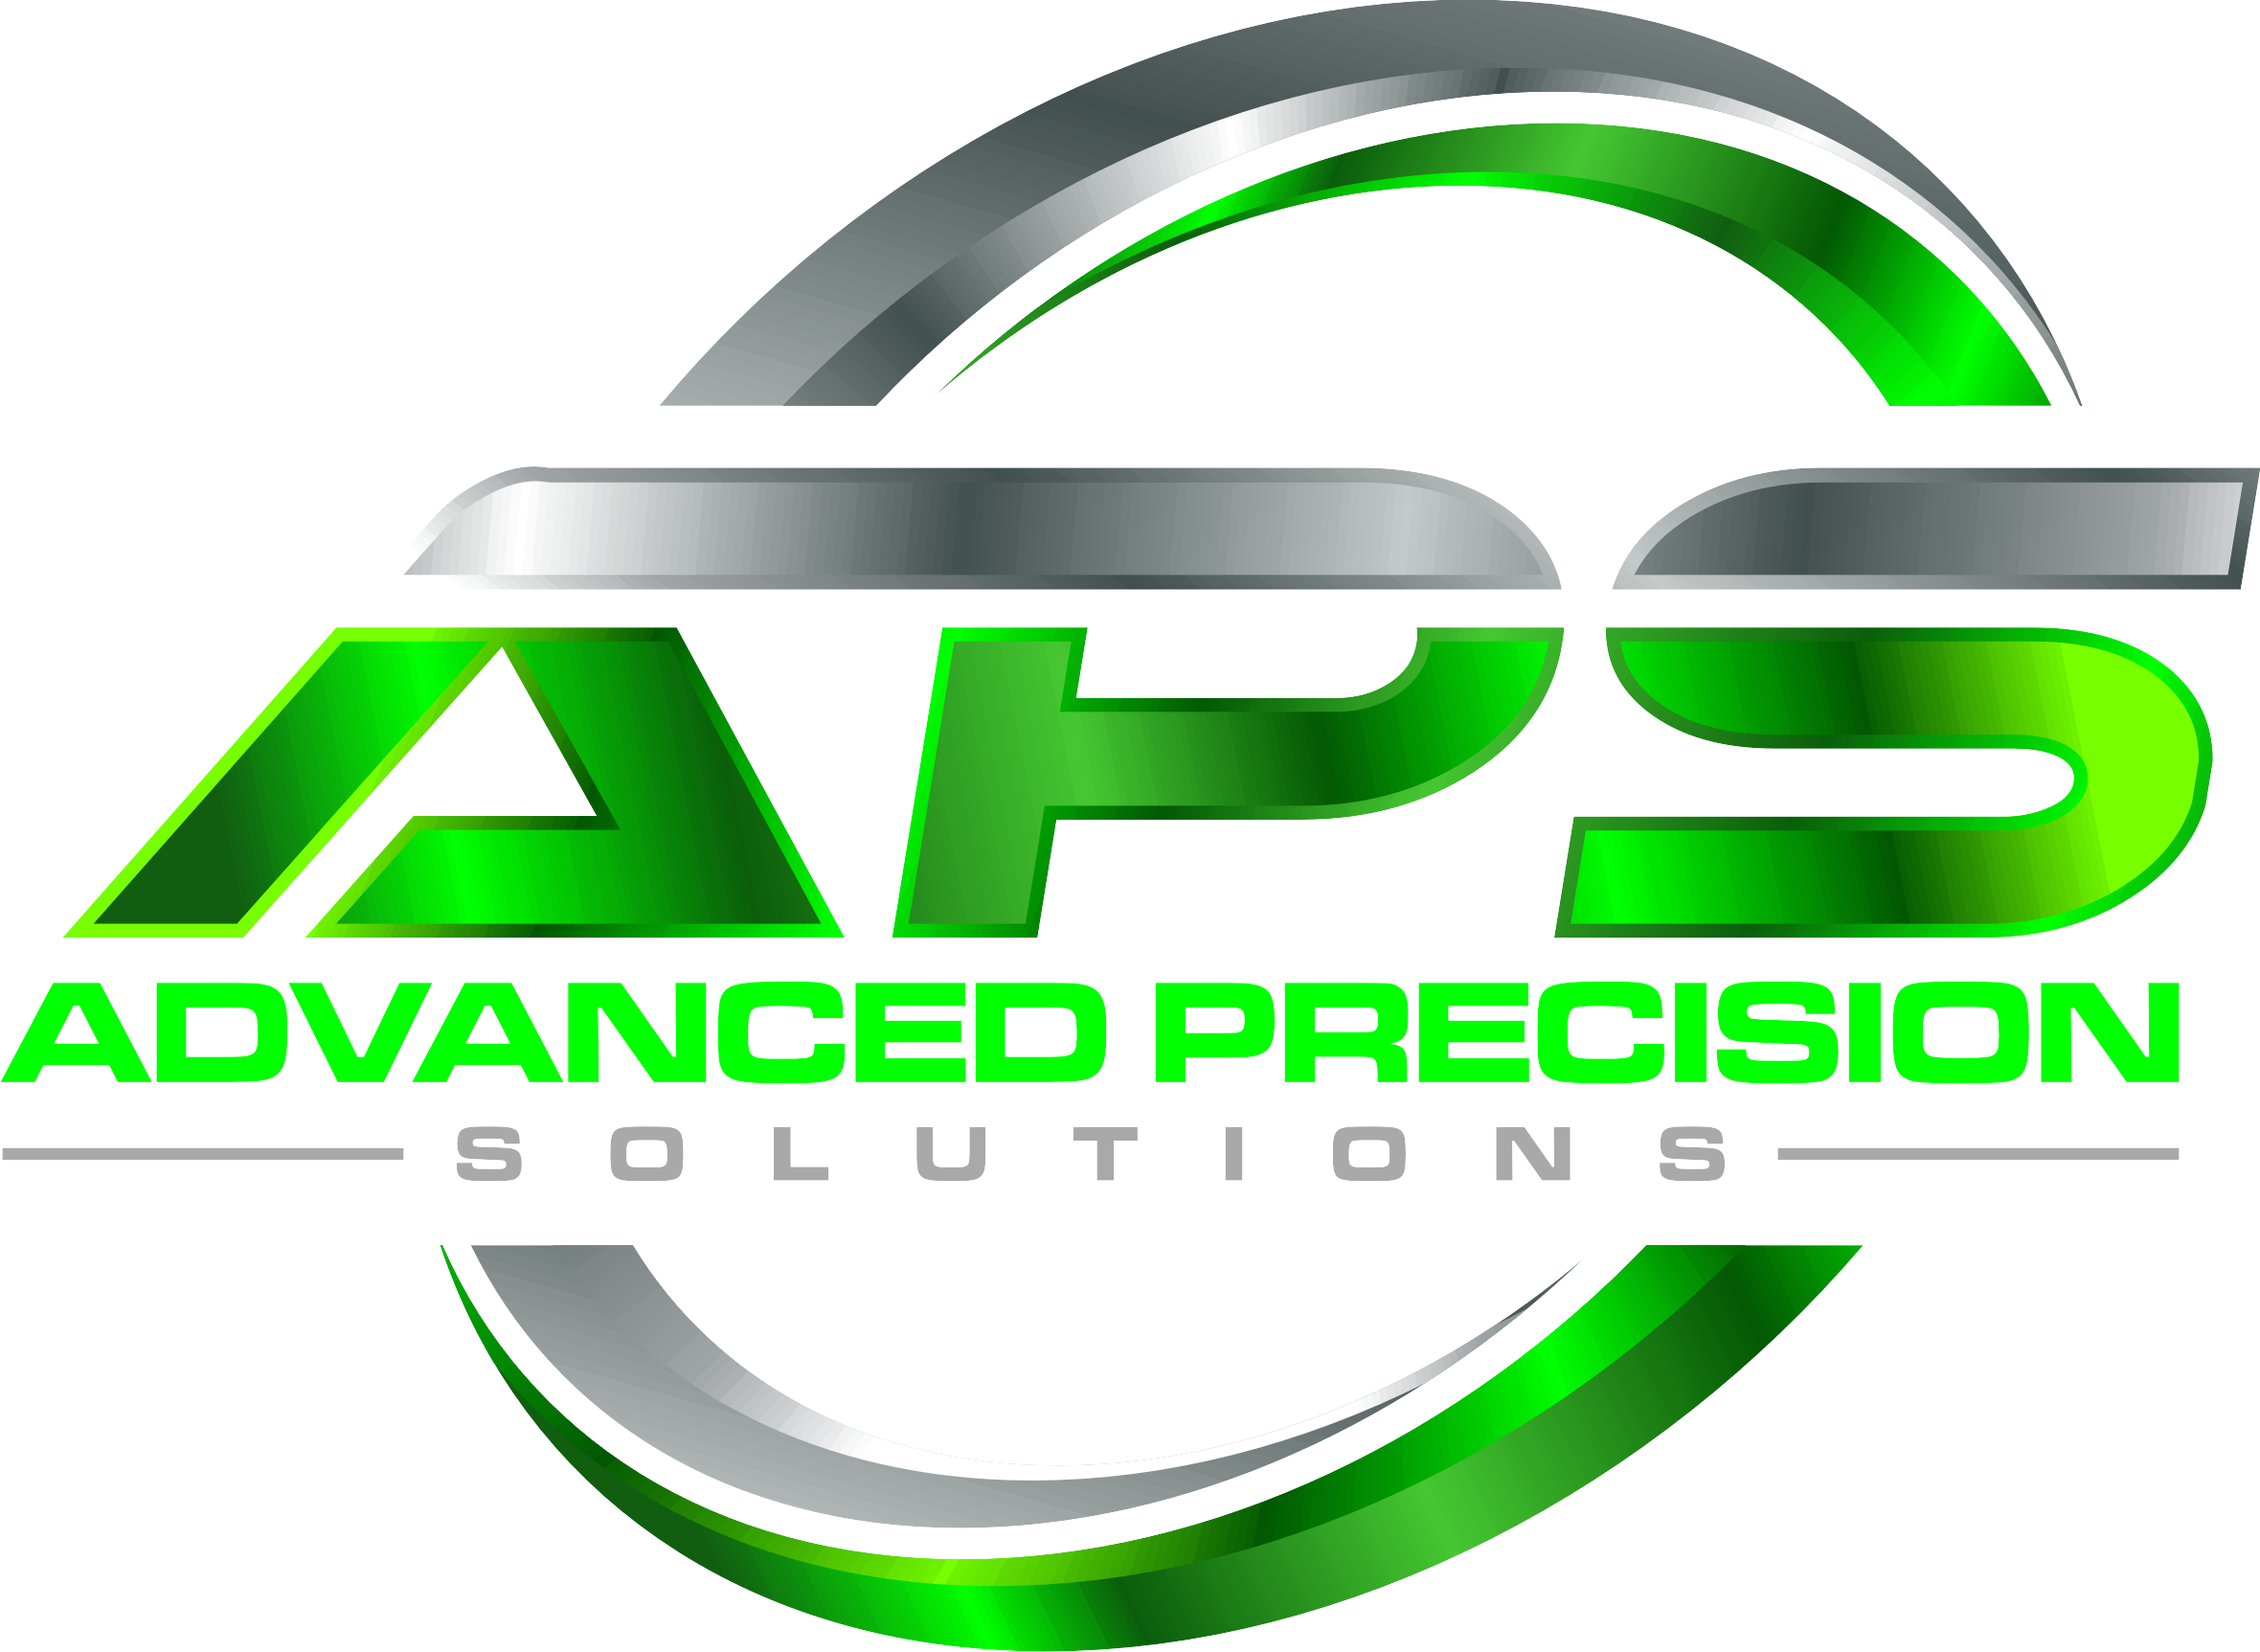 Advanced Precision Solutions | CNC Machining & Assembly